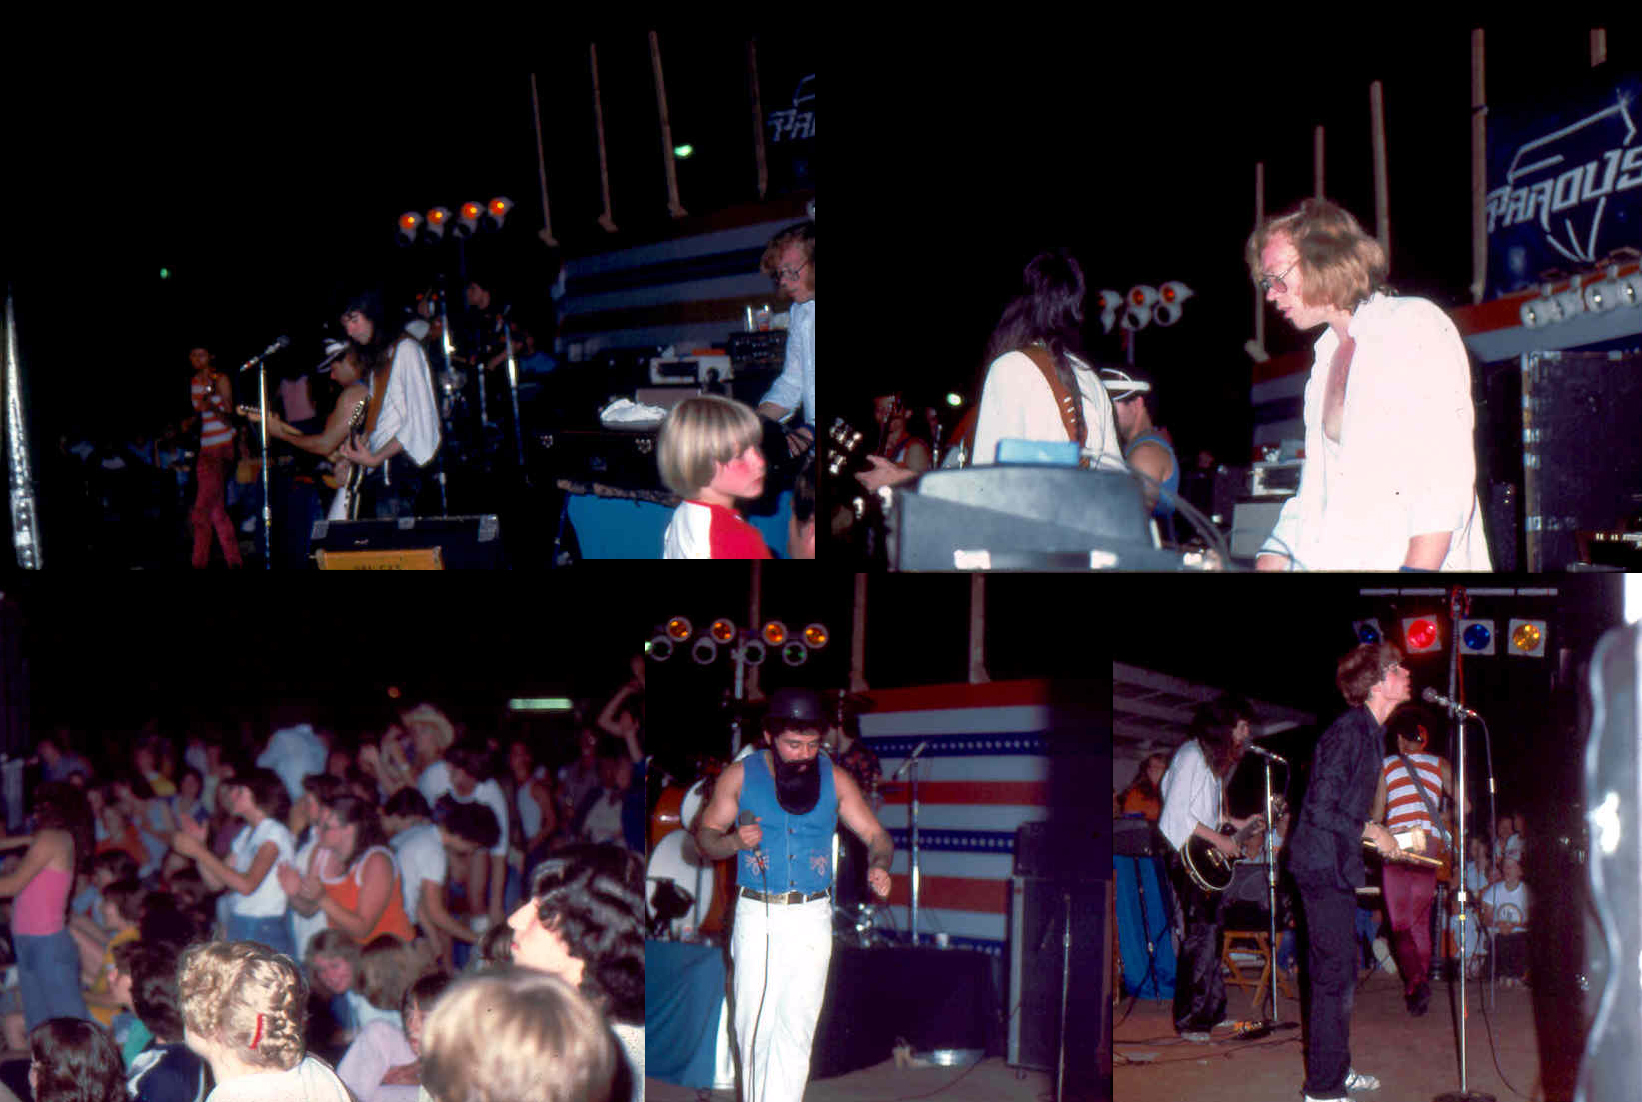 Parousia concert at Riverside Park – July 3rd 1981